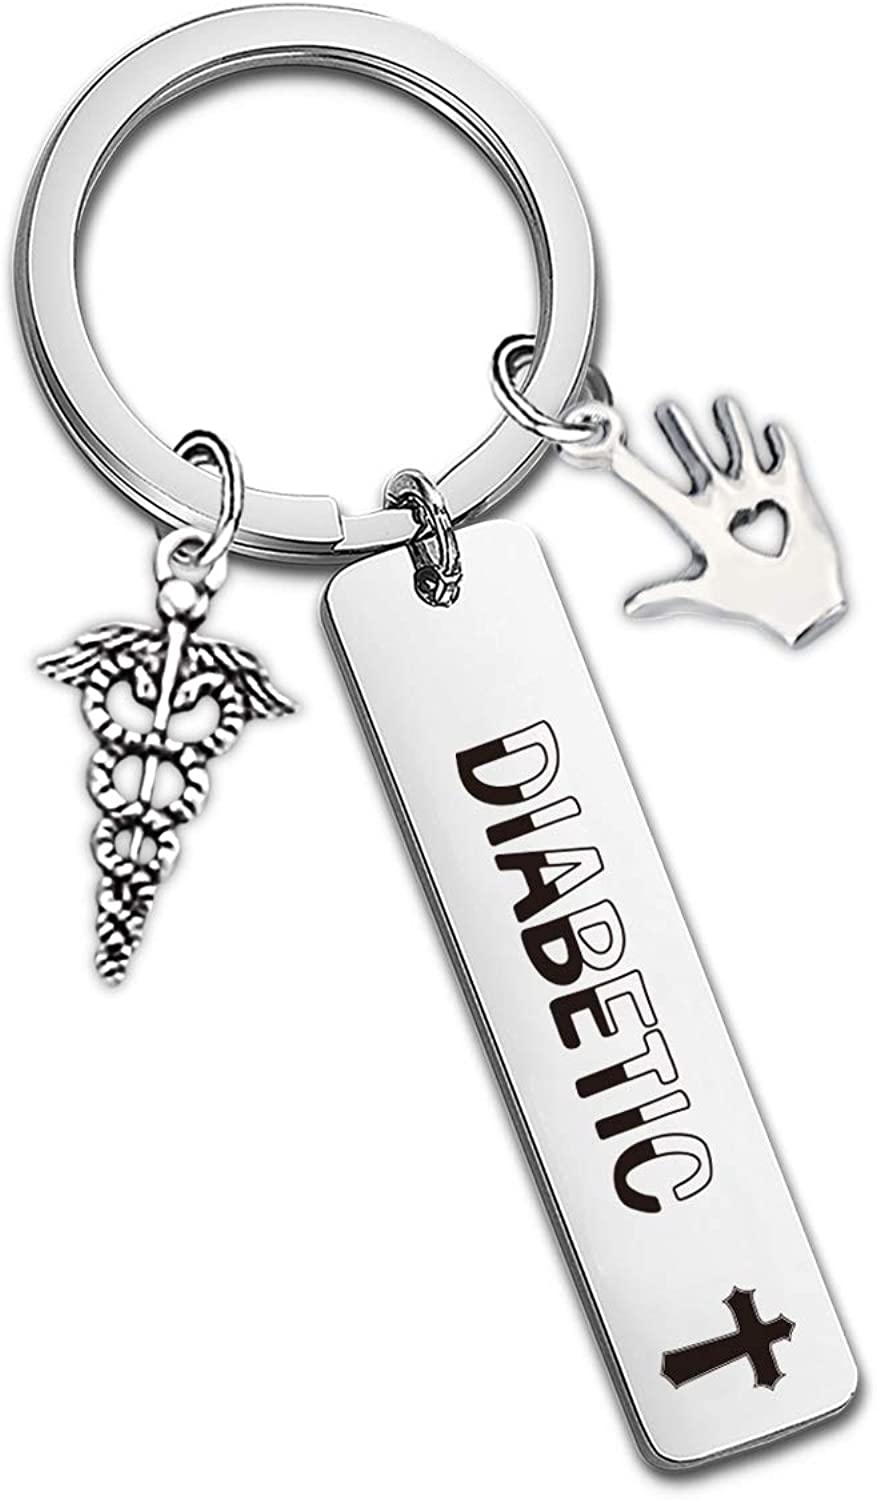 SIDIMELO Diabetic Keychain for Men Women Girl Boy Diabetic Medical Alert Keychain Diabetic Charm and Warning Charm Diabetic Health Symbol Sign Diabetes Emergency Key Chain